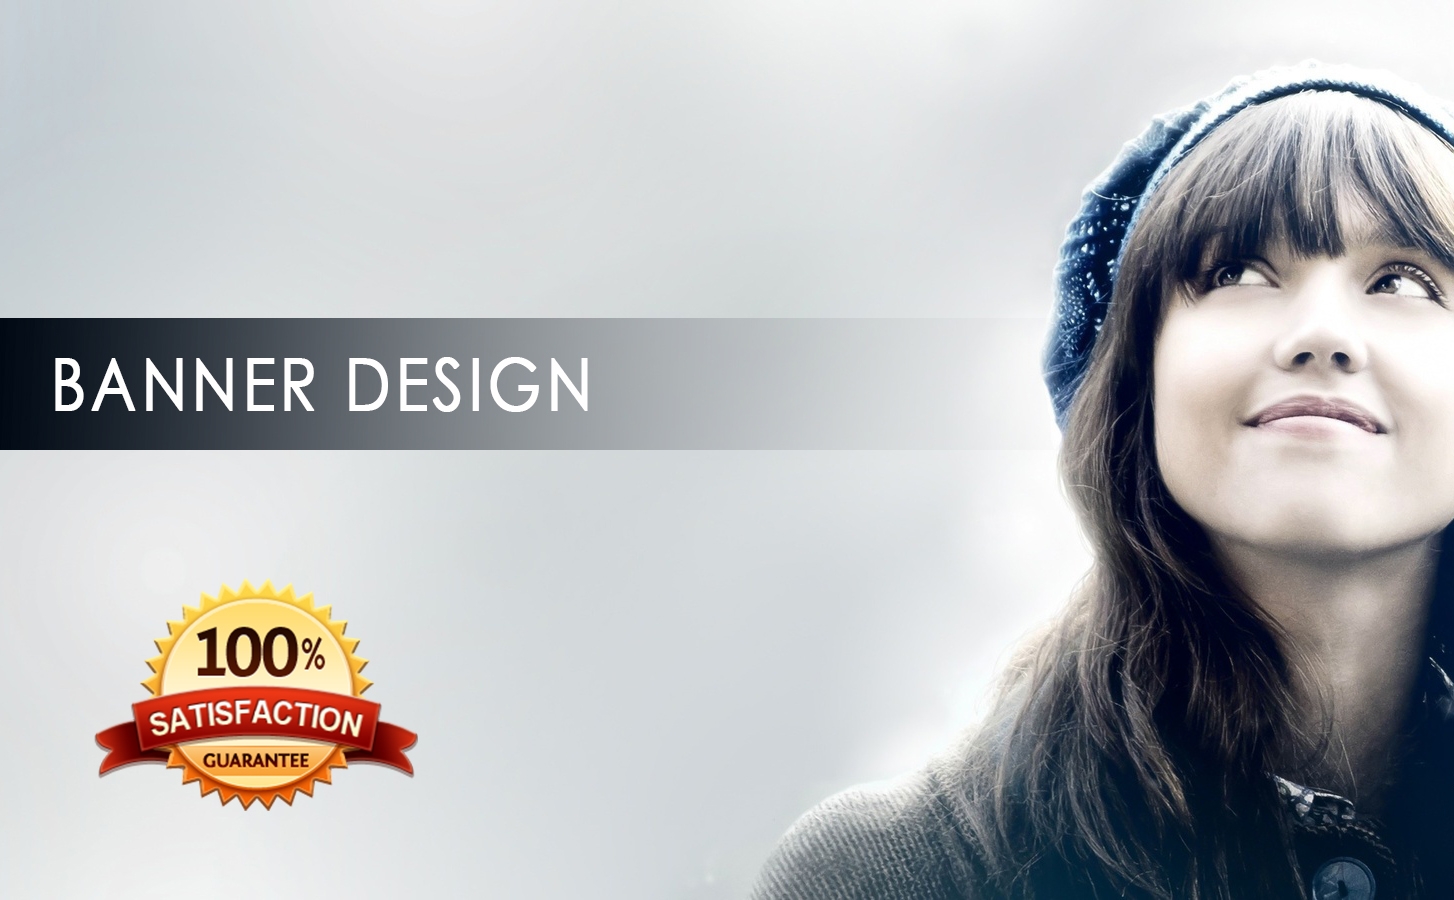 design your banners, headers and Ads